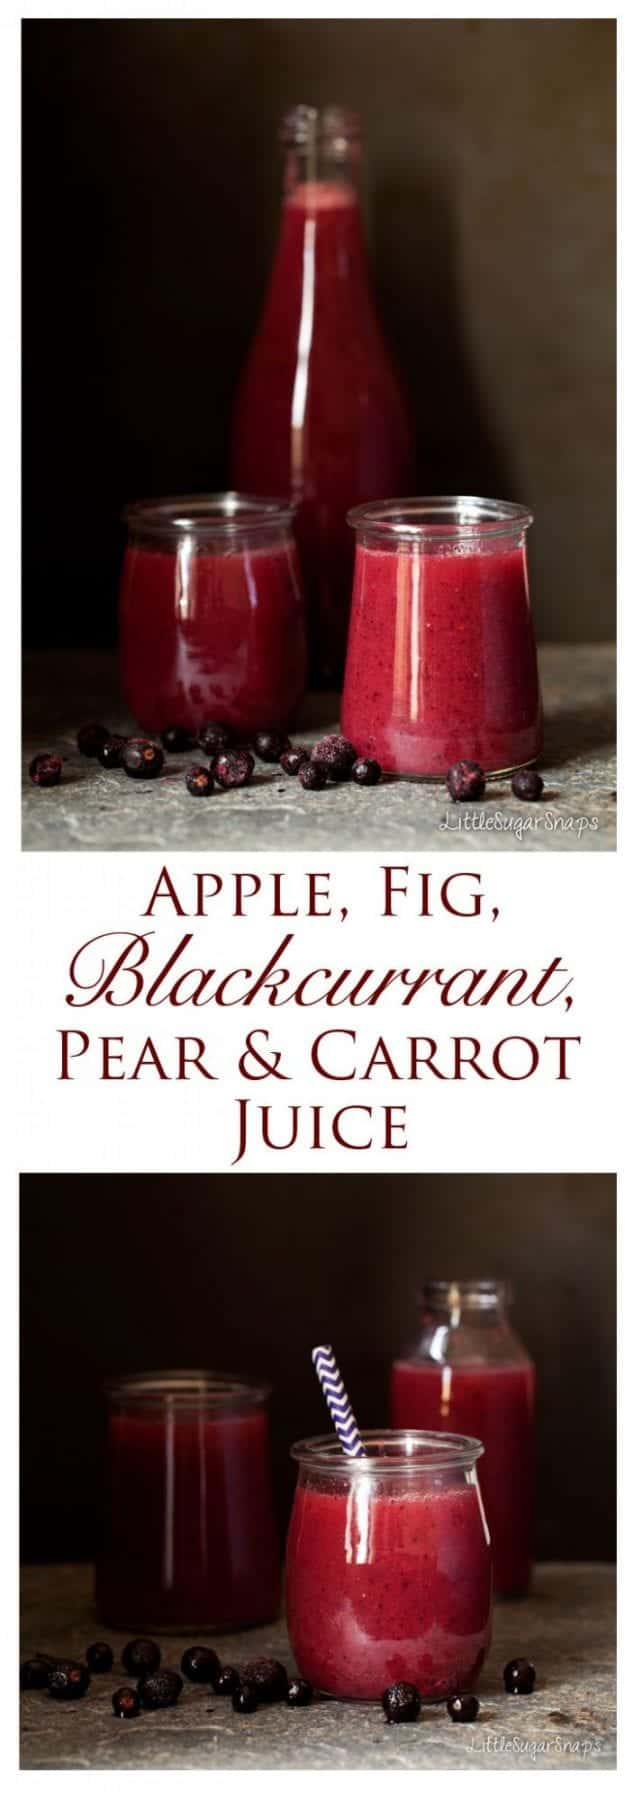 Apple, Fig, Blackcurrant, Pear & Carrot Juice is a wonderful twist on plain apple juice. It's packed with nutritious goodies, colourful and tasty. Also really easy to make.